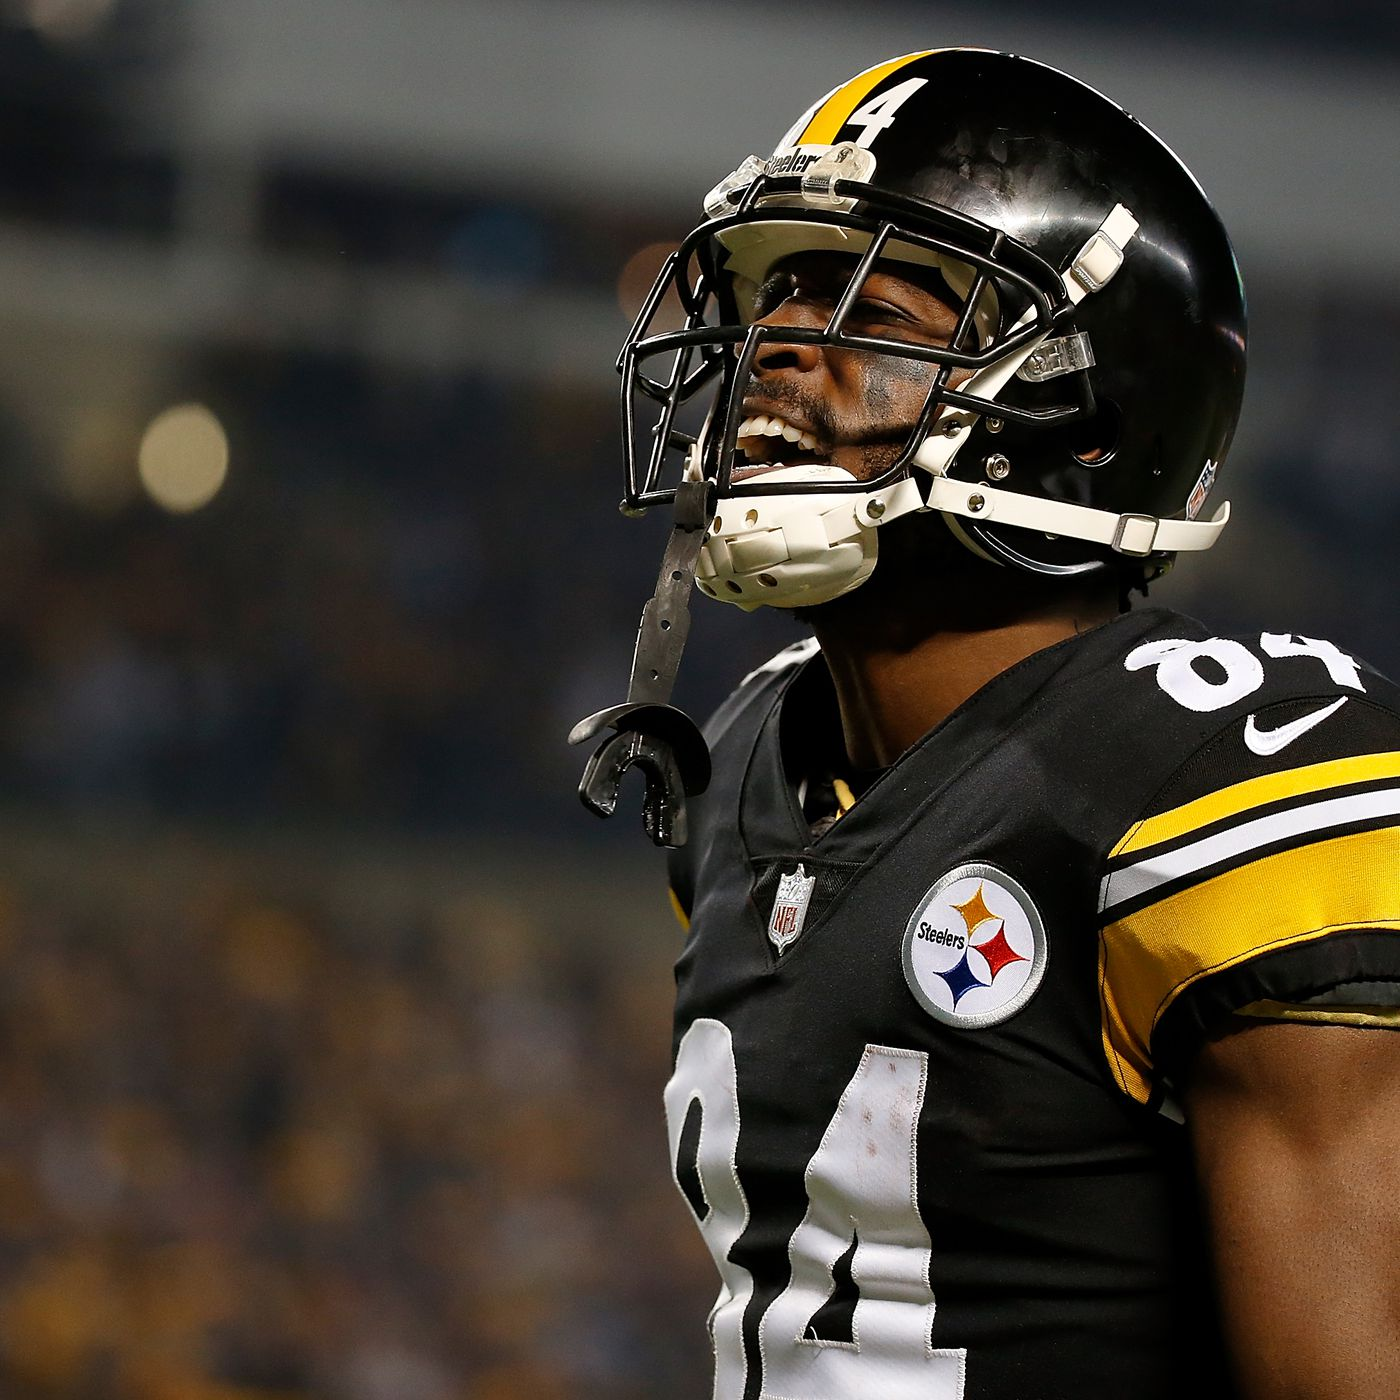 outlet store 75fce 9cbc8 Antonio Brown calls out GM Kevin Colbert for disrespectful ...